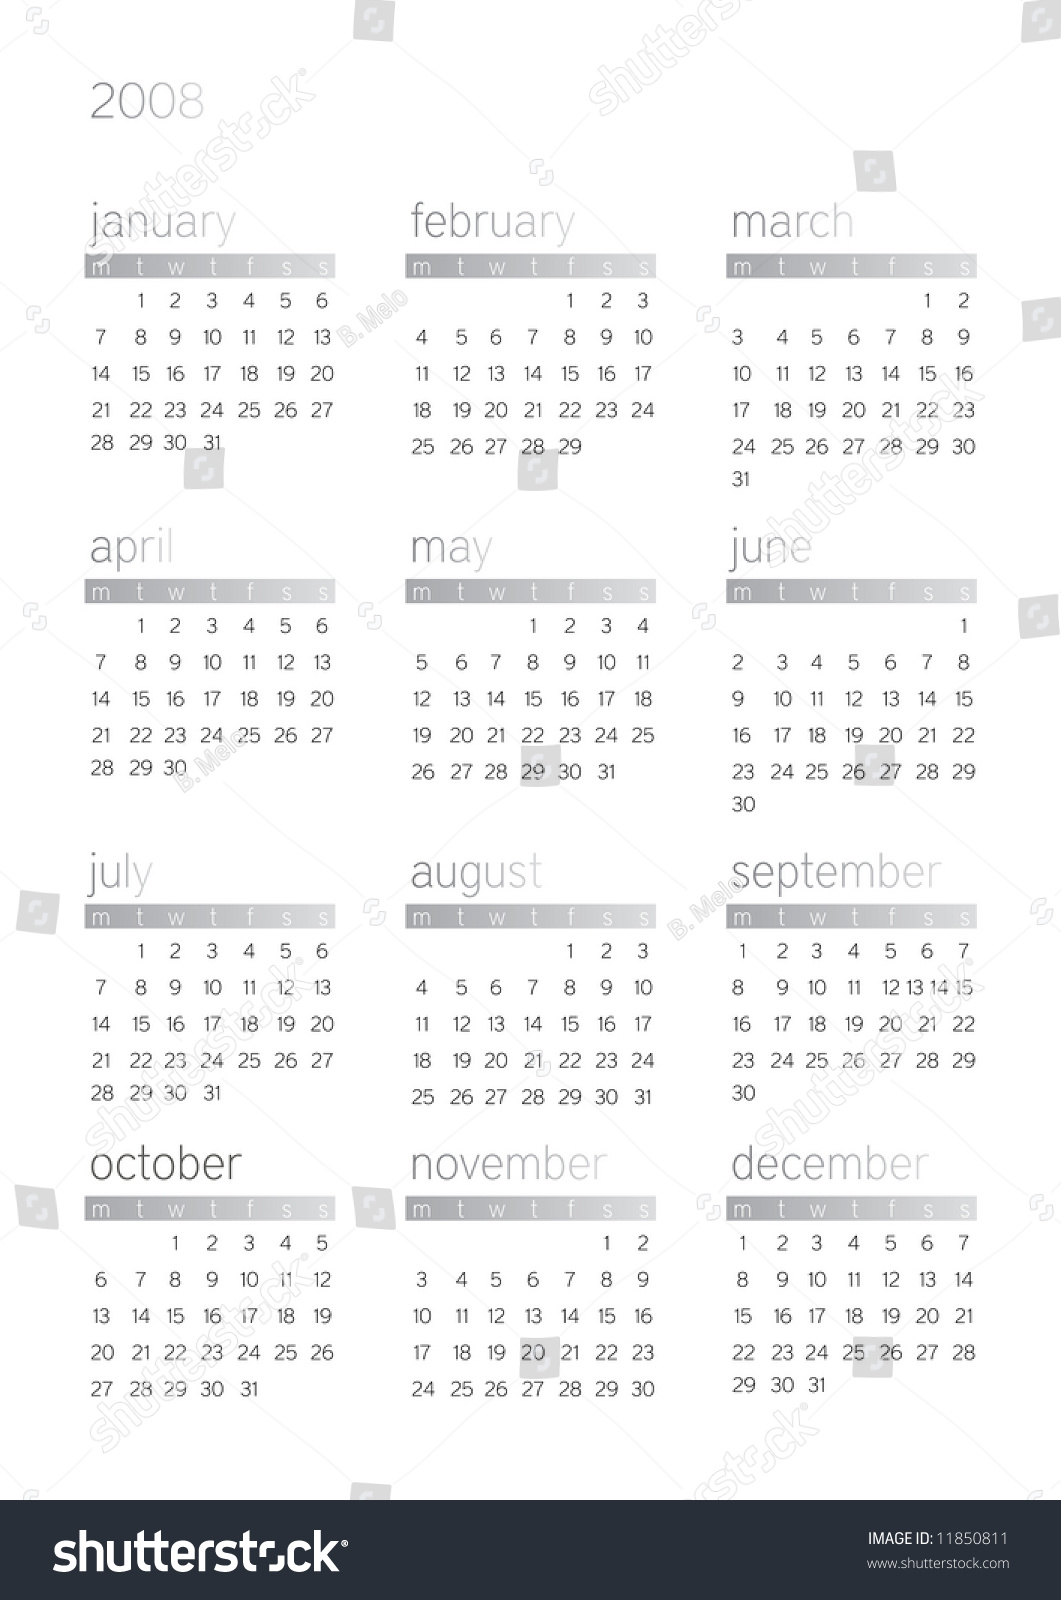 2008 White Background Gregorian Calendar With Days And Dates Stock Photo 11850811 : Shutterstock